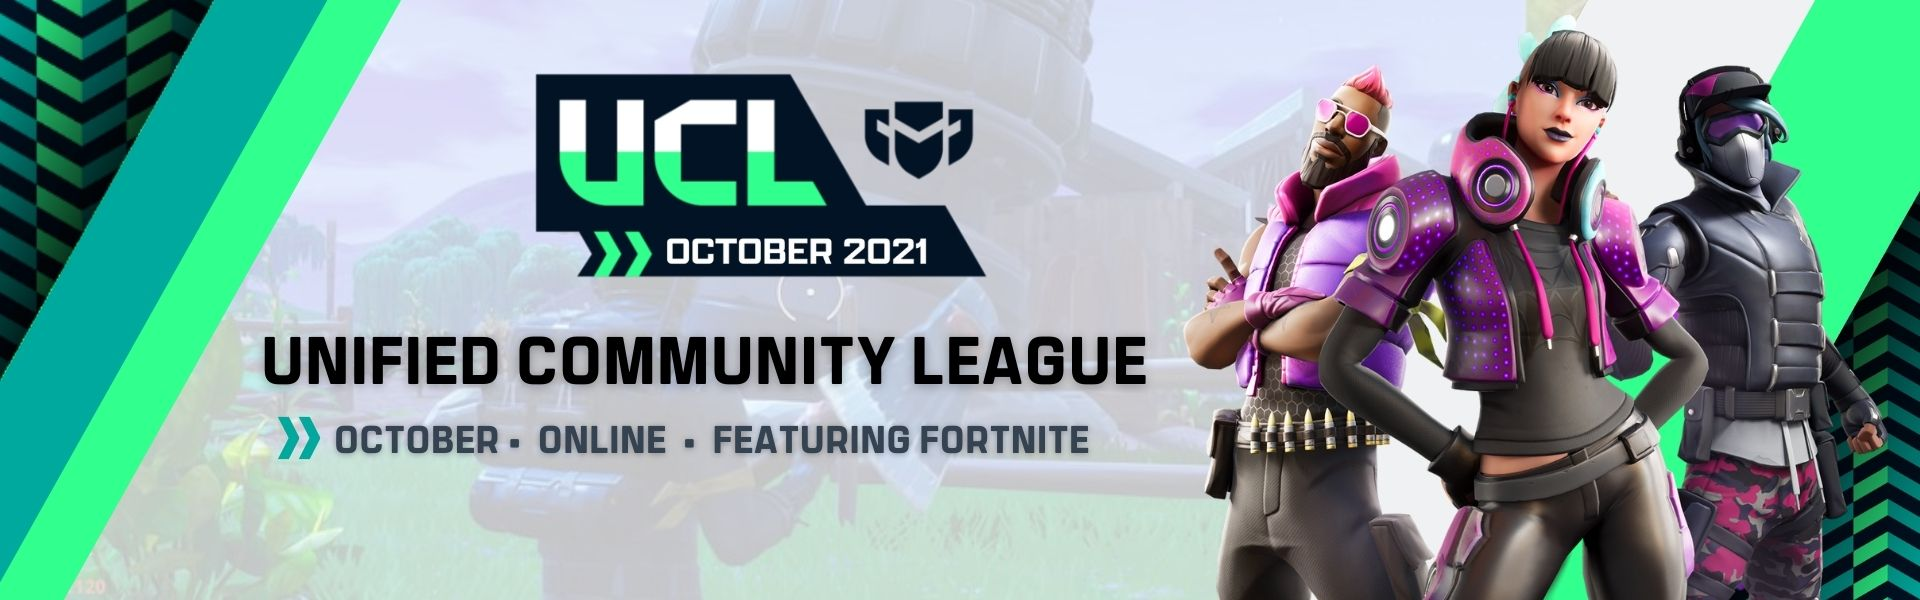 October UCL: Featuring Fortnite